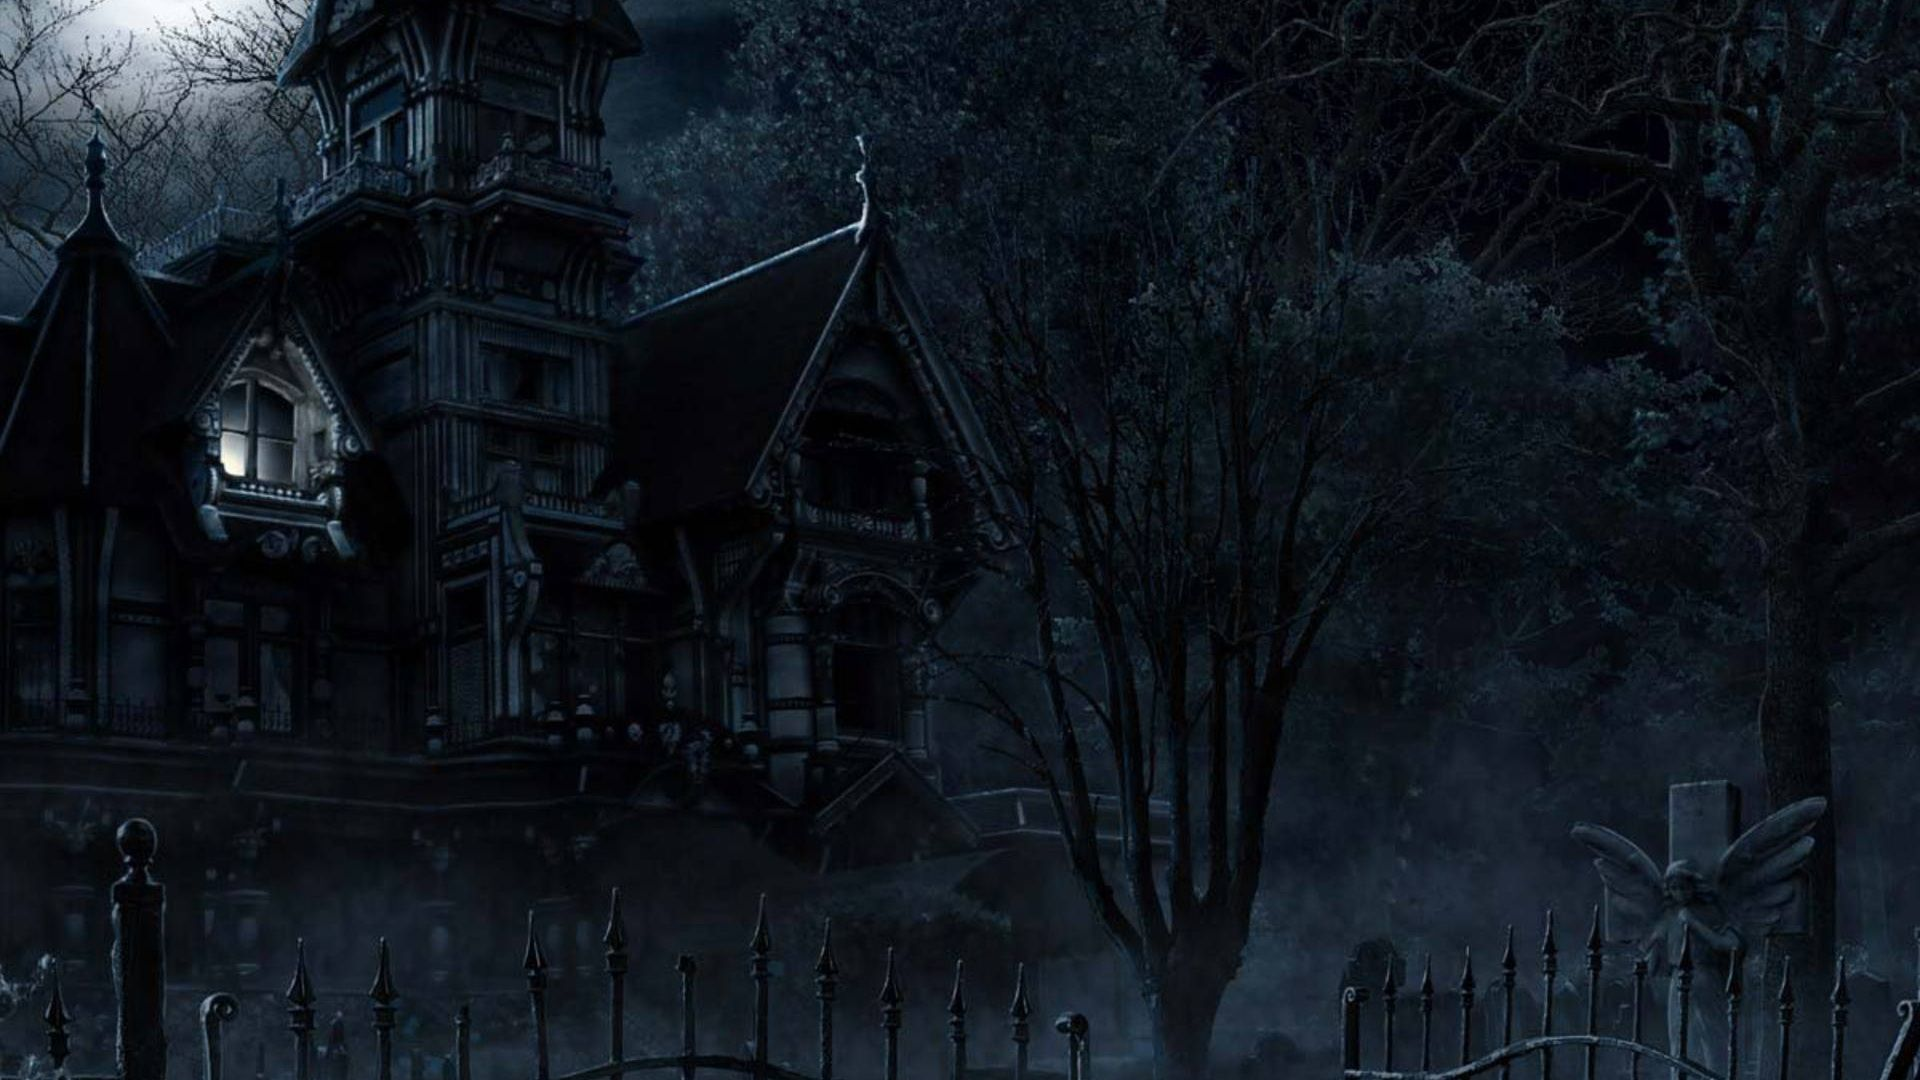 Descarga Gratis De Halloween Fondos De Escritorio De Alta Definicion Halloween Desktop Wallpaper Halloween Wallpaper Witch Wallpaper